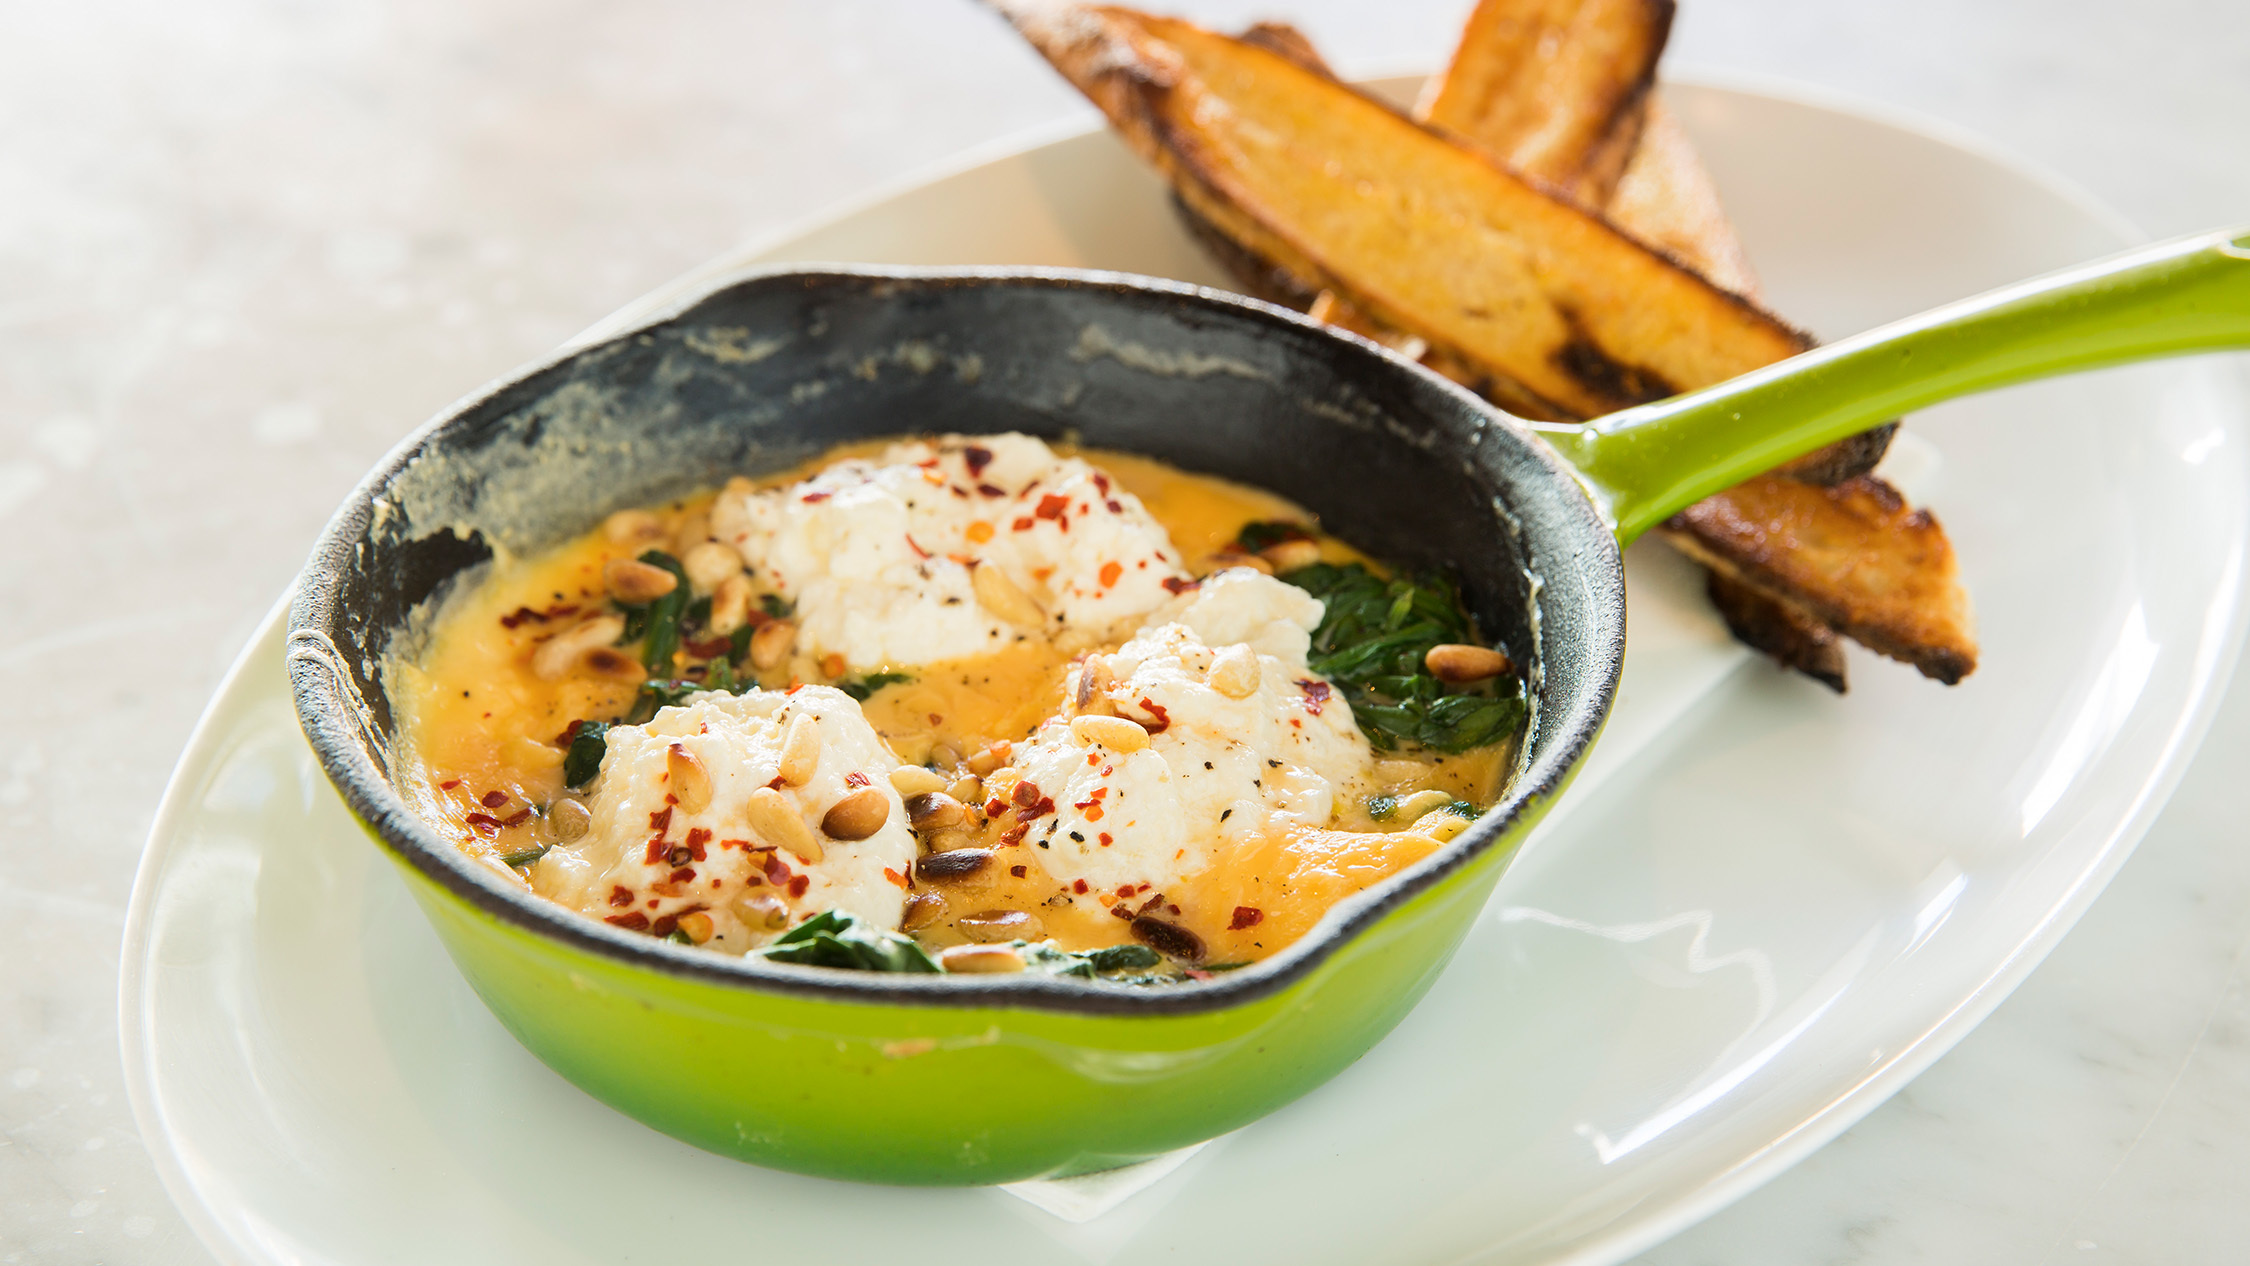 Baked eggs at Bills Bondi